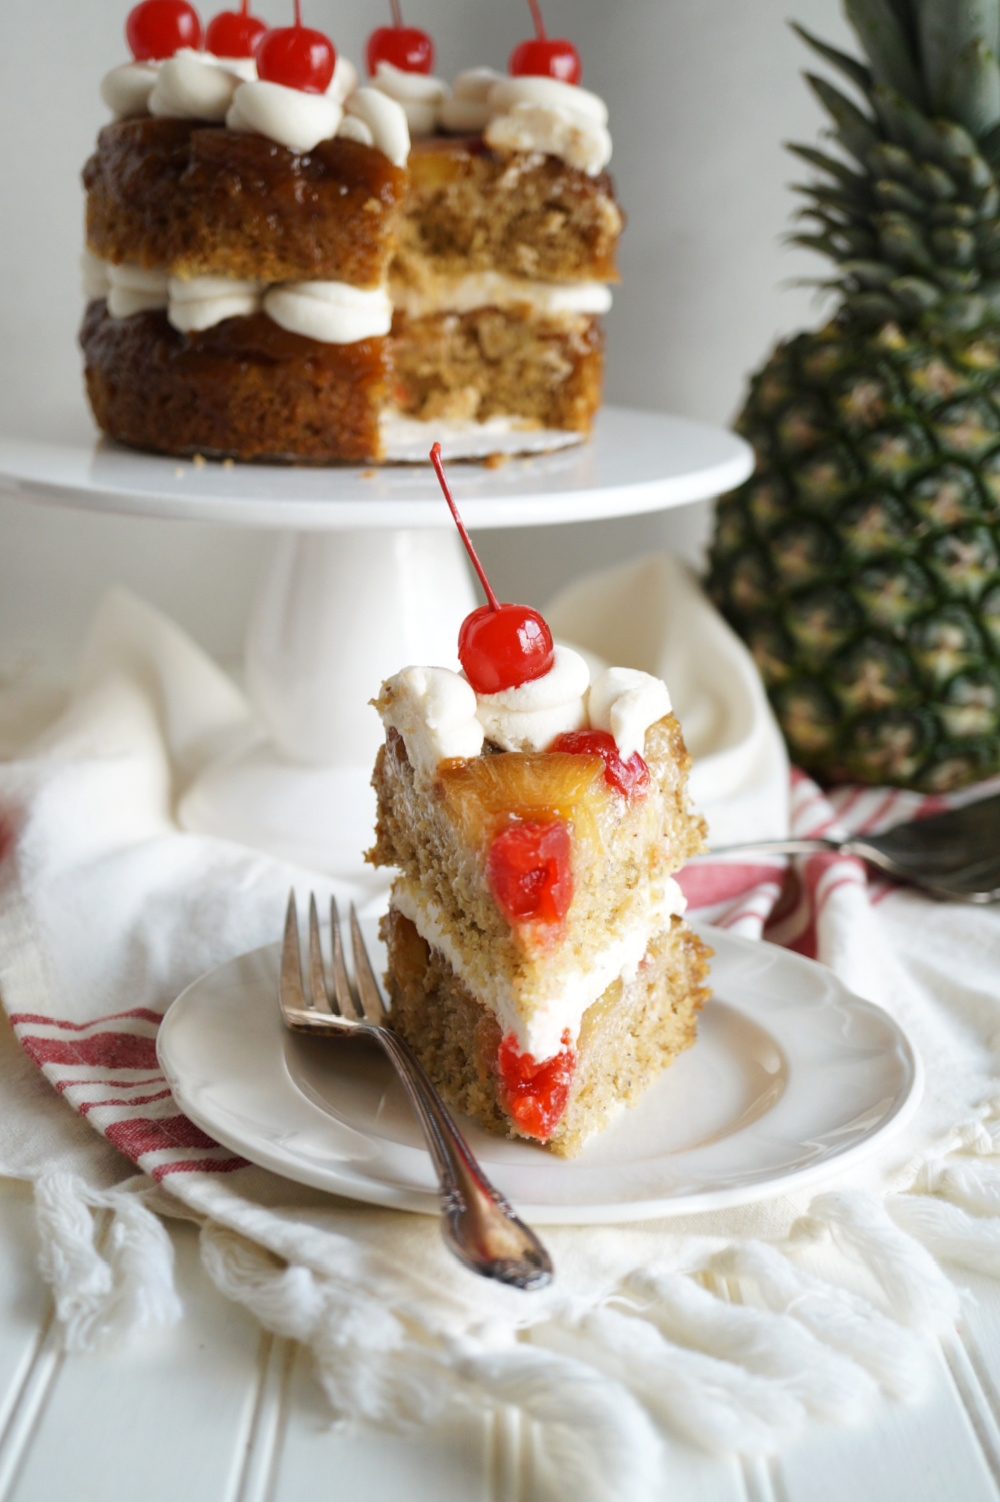 head-on view of slice of pineapple cake